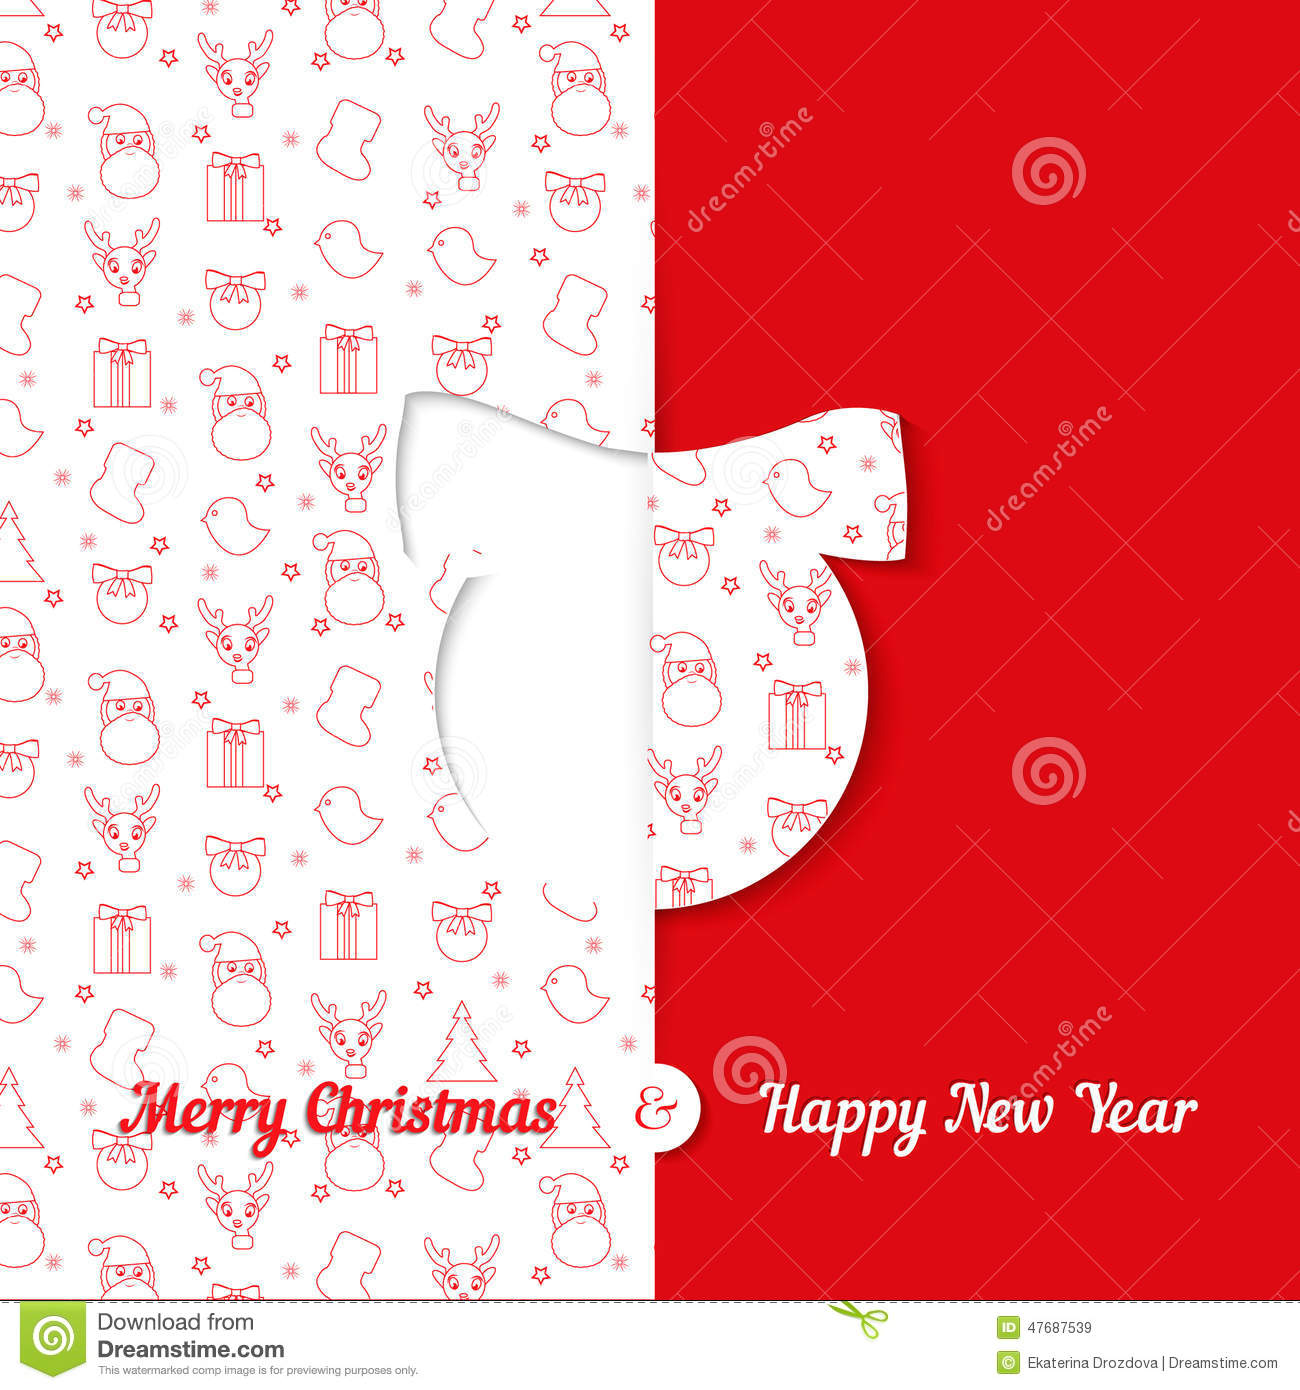 Christmas And New Year Greeting Card Templates Images – New Year Greeting Card Template